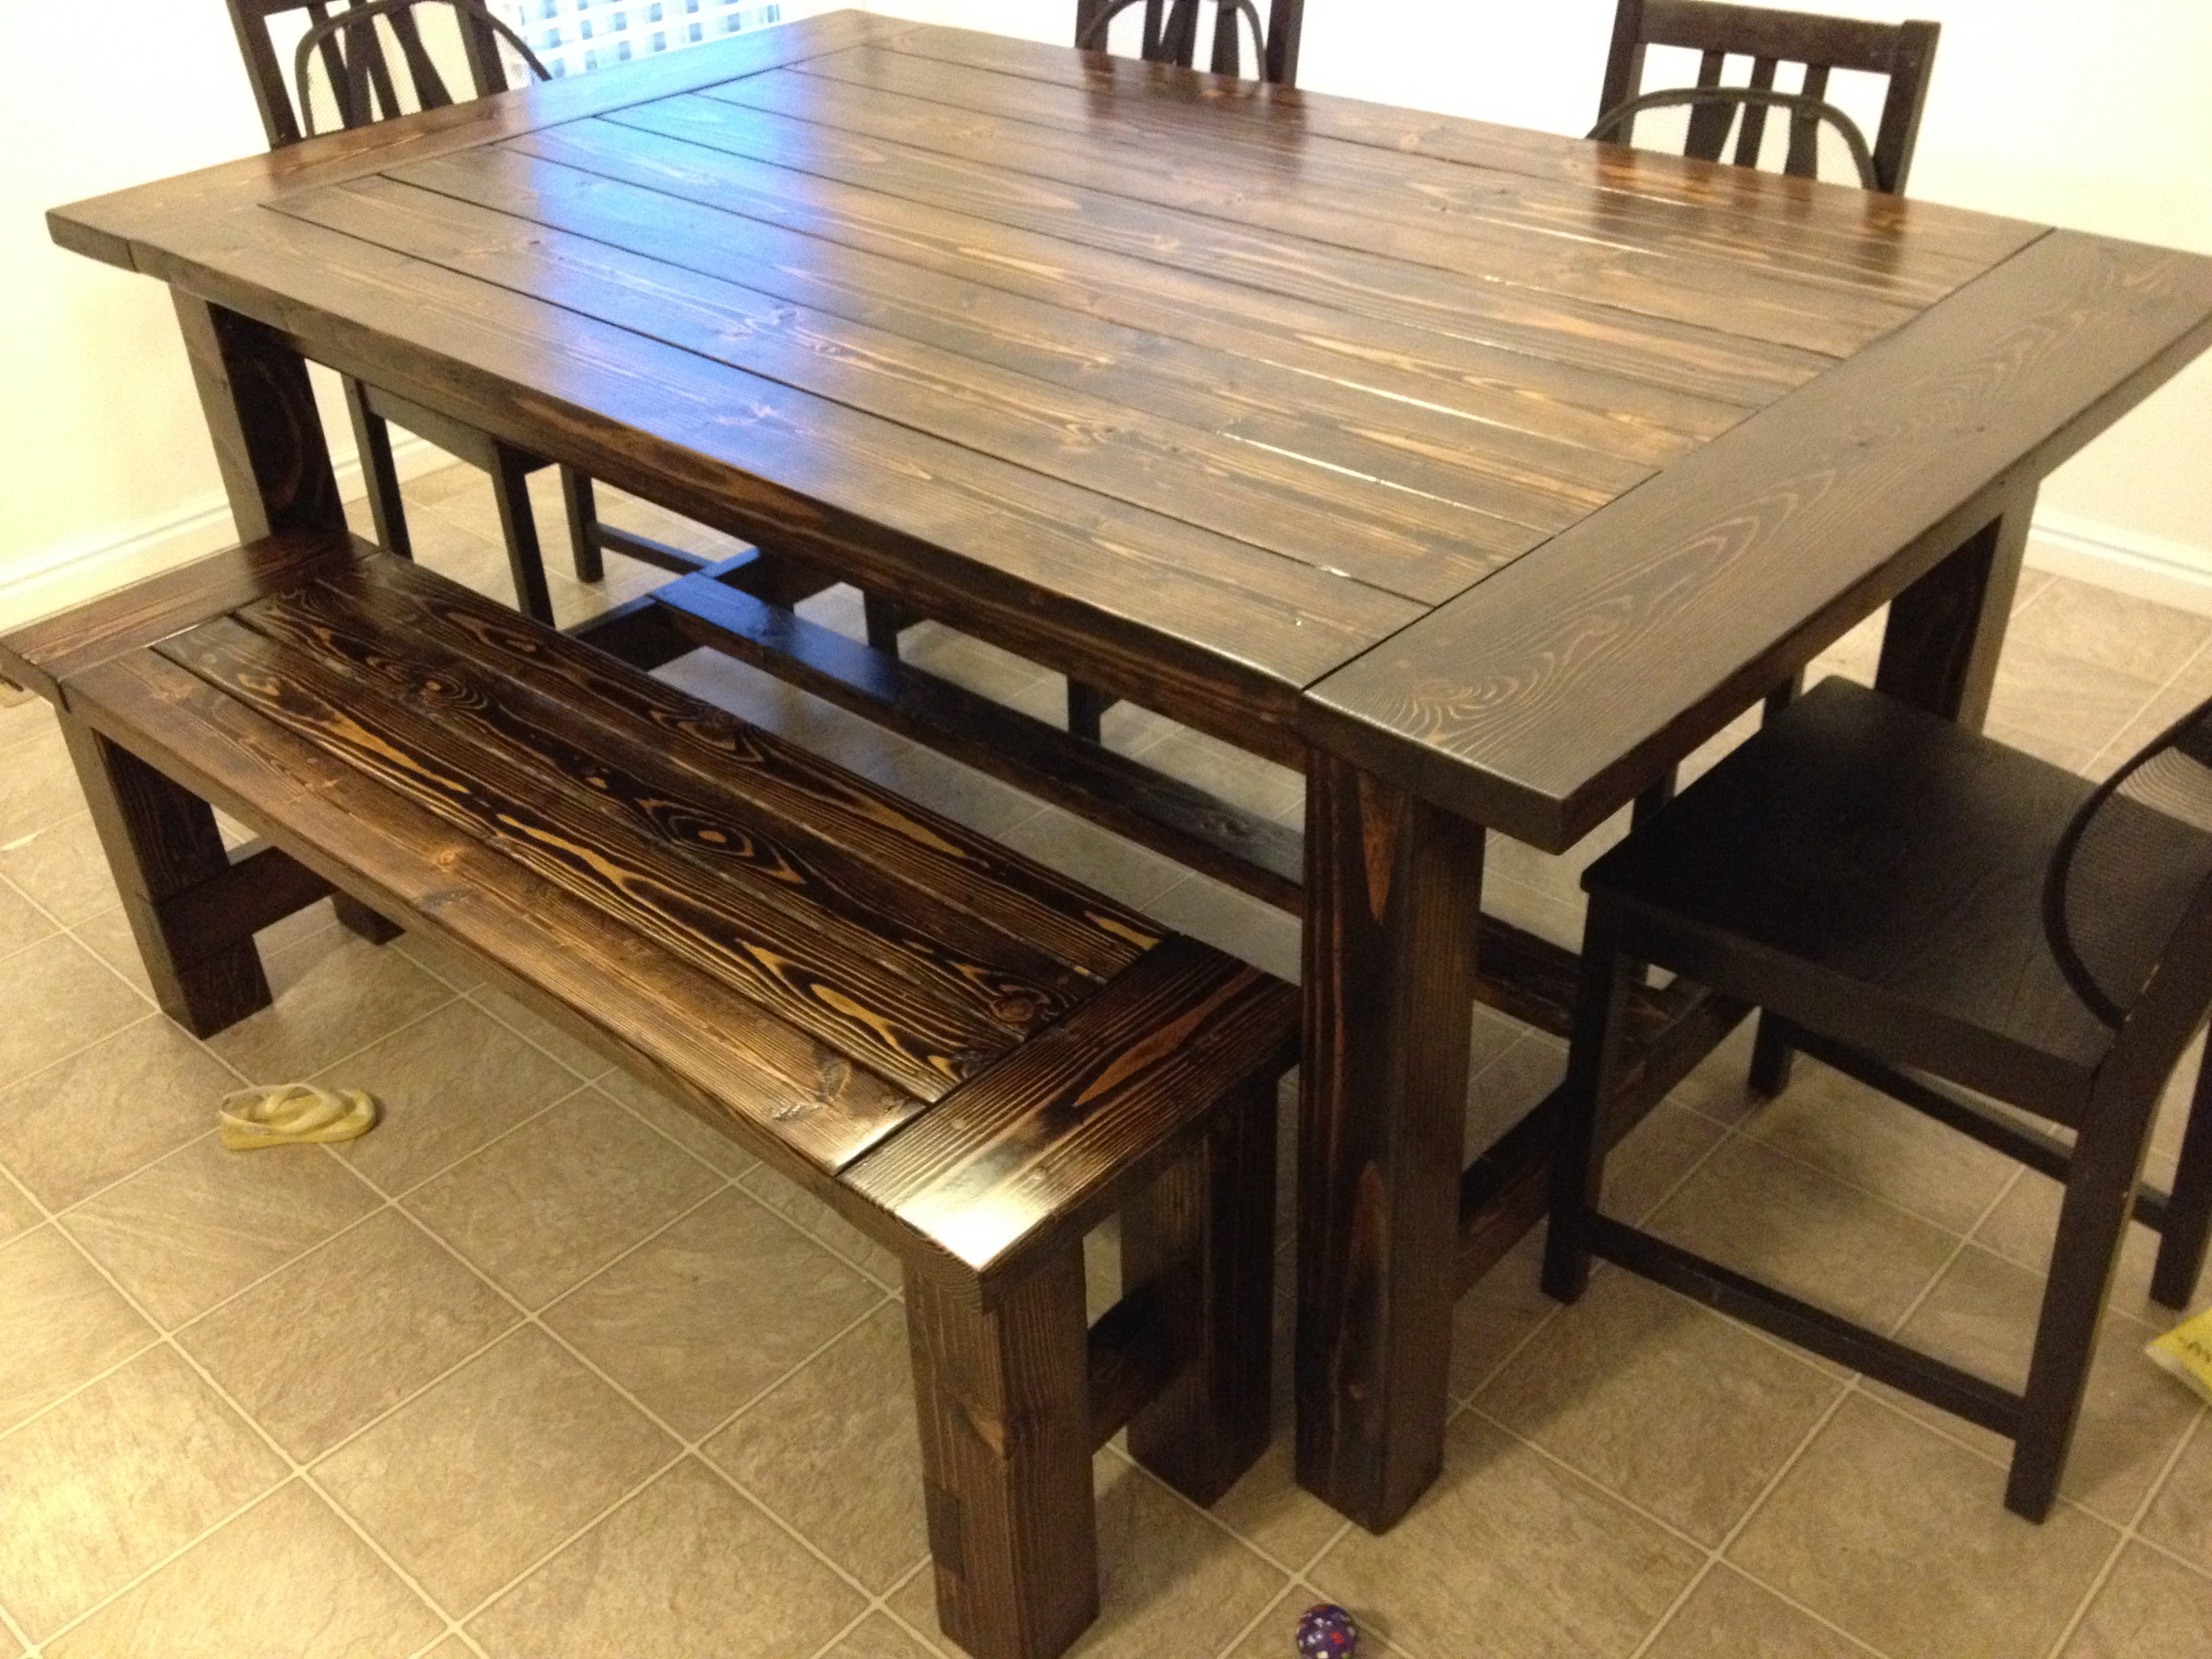 farmhouse table bench plans Ana White | Farmhouse Table and Bench   DIY Projects farmhouse table bench plans